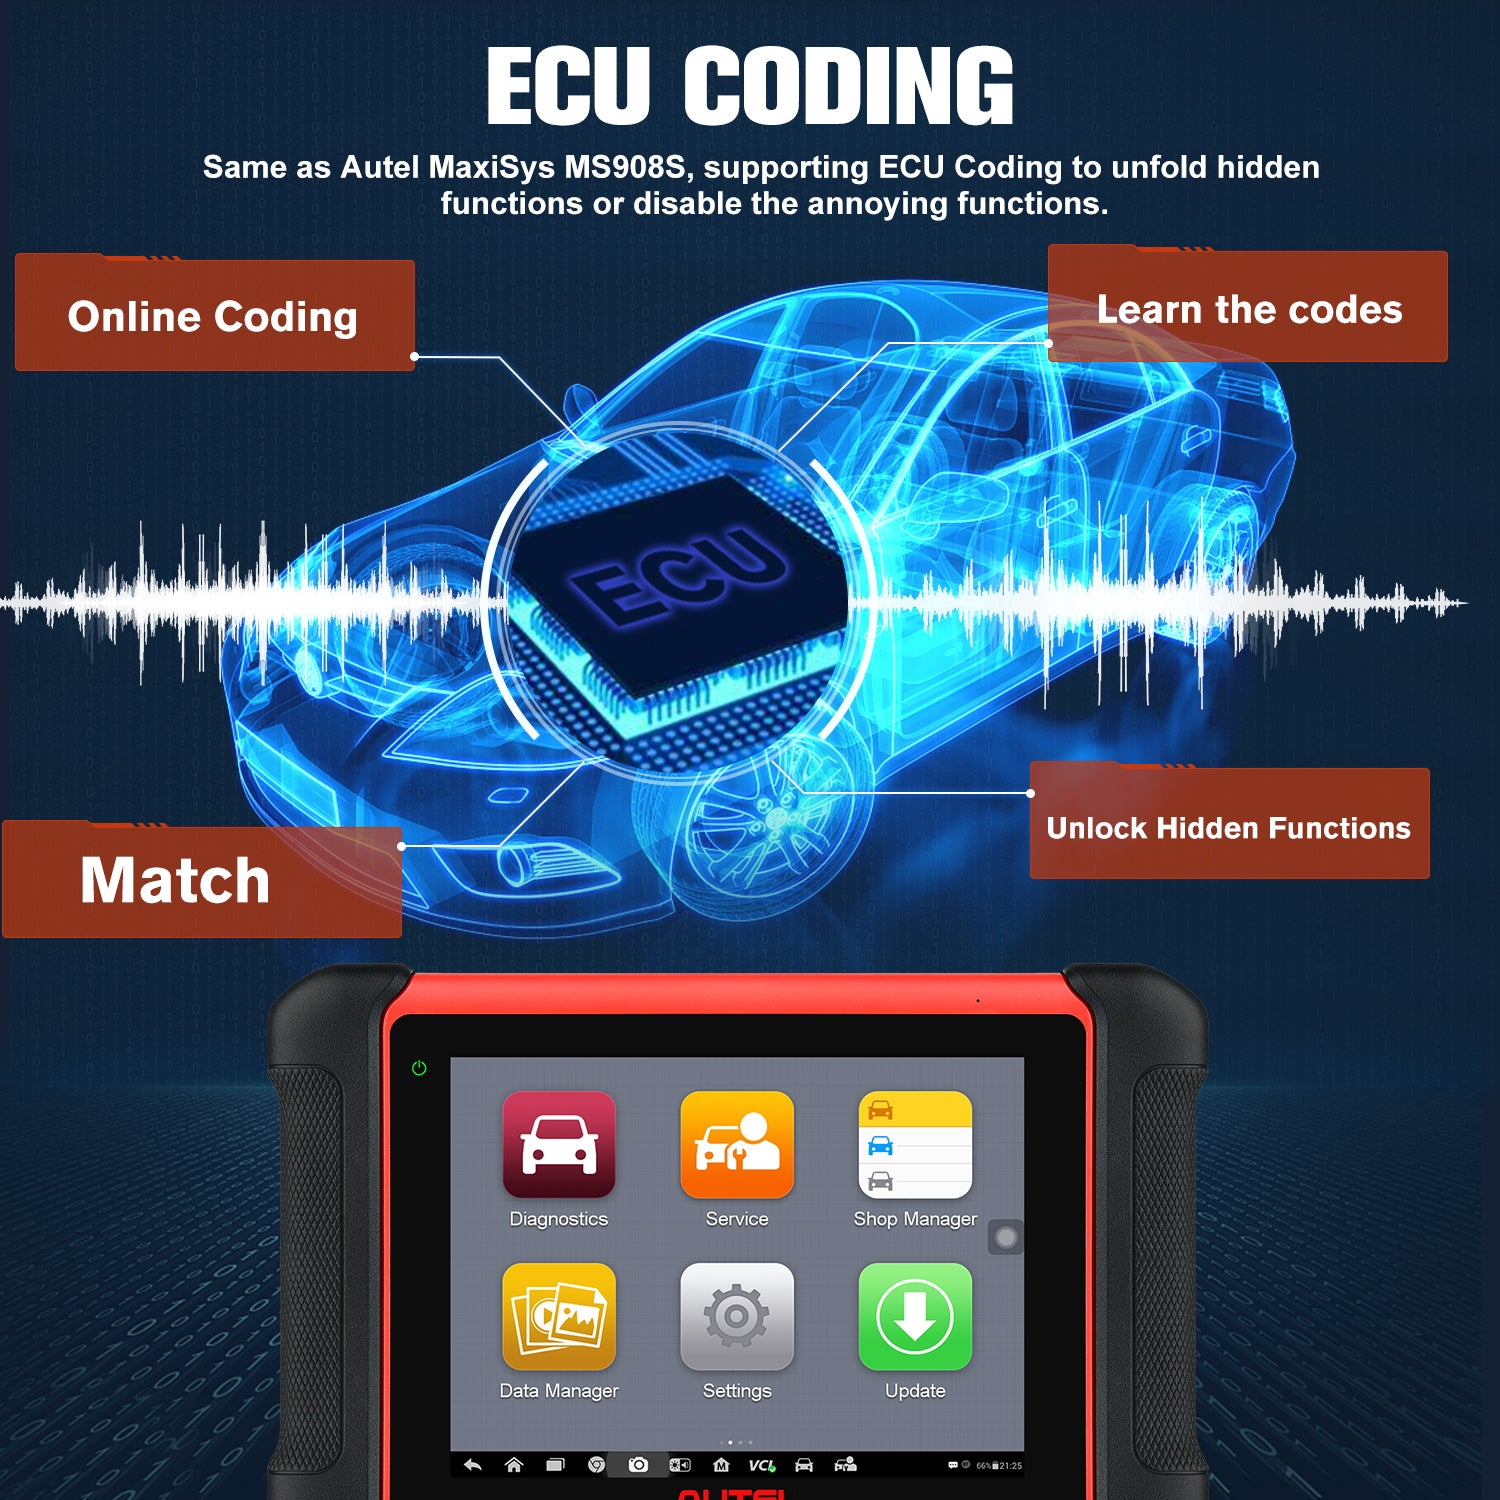 MK906BT Enhanced ECU Coding